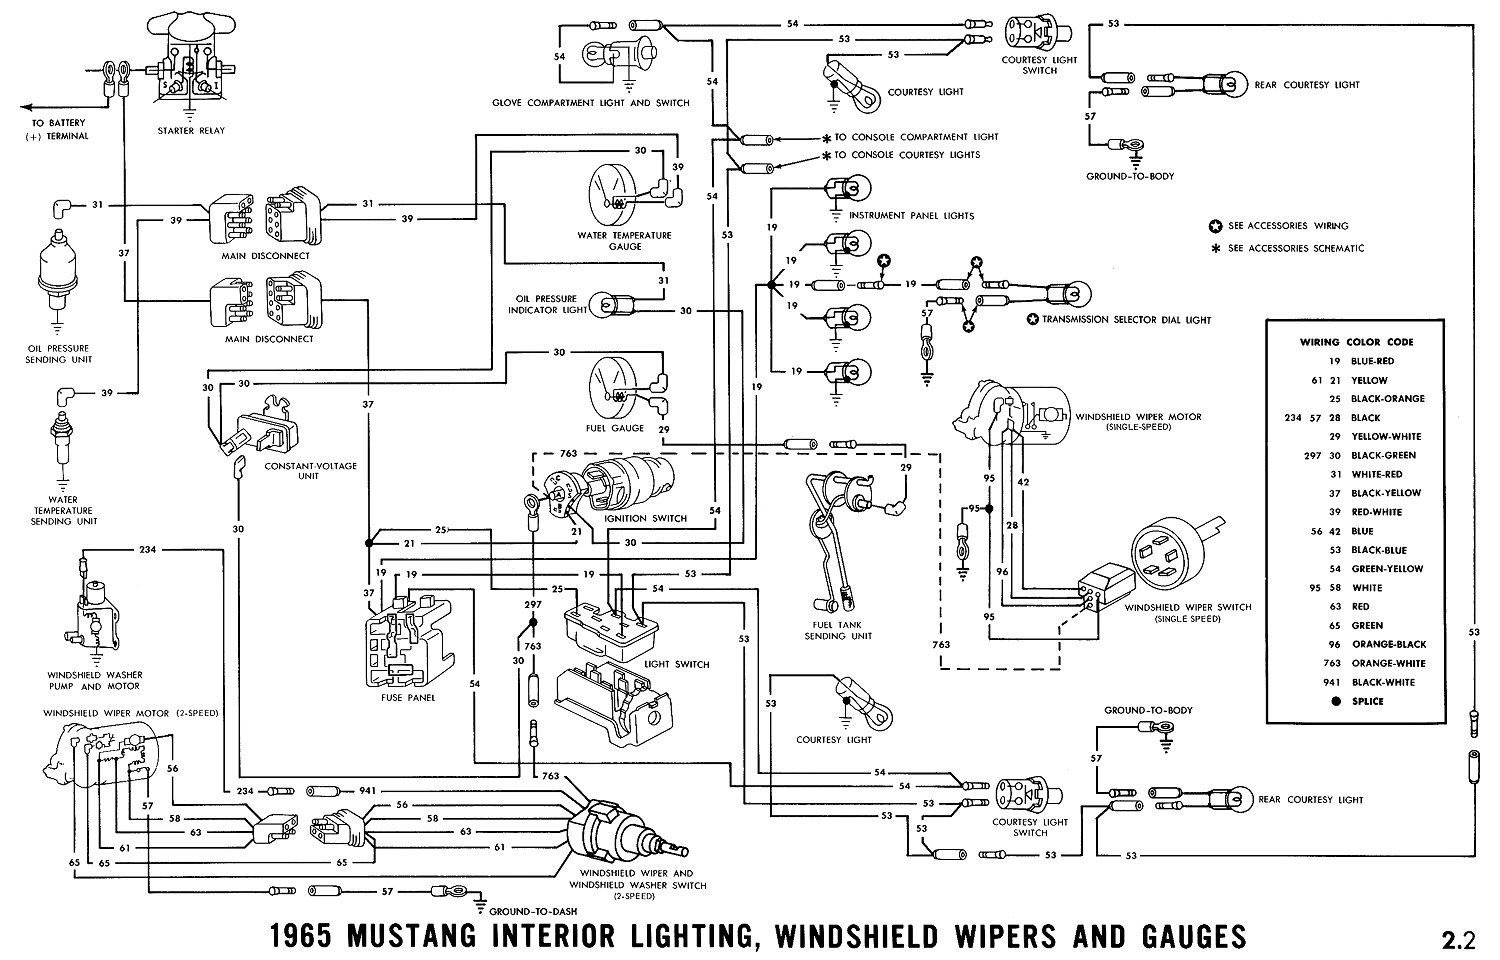 1965g 1965 mustang wiring diagrams average joe restoration 65 mustang dash wiring diagram at bayanpartner.co